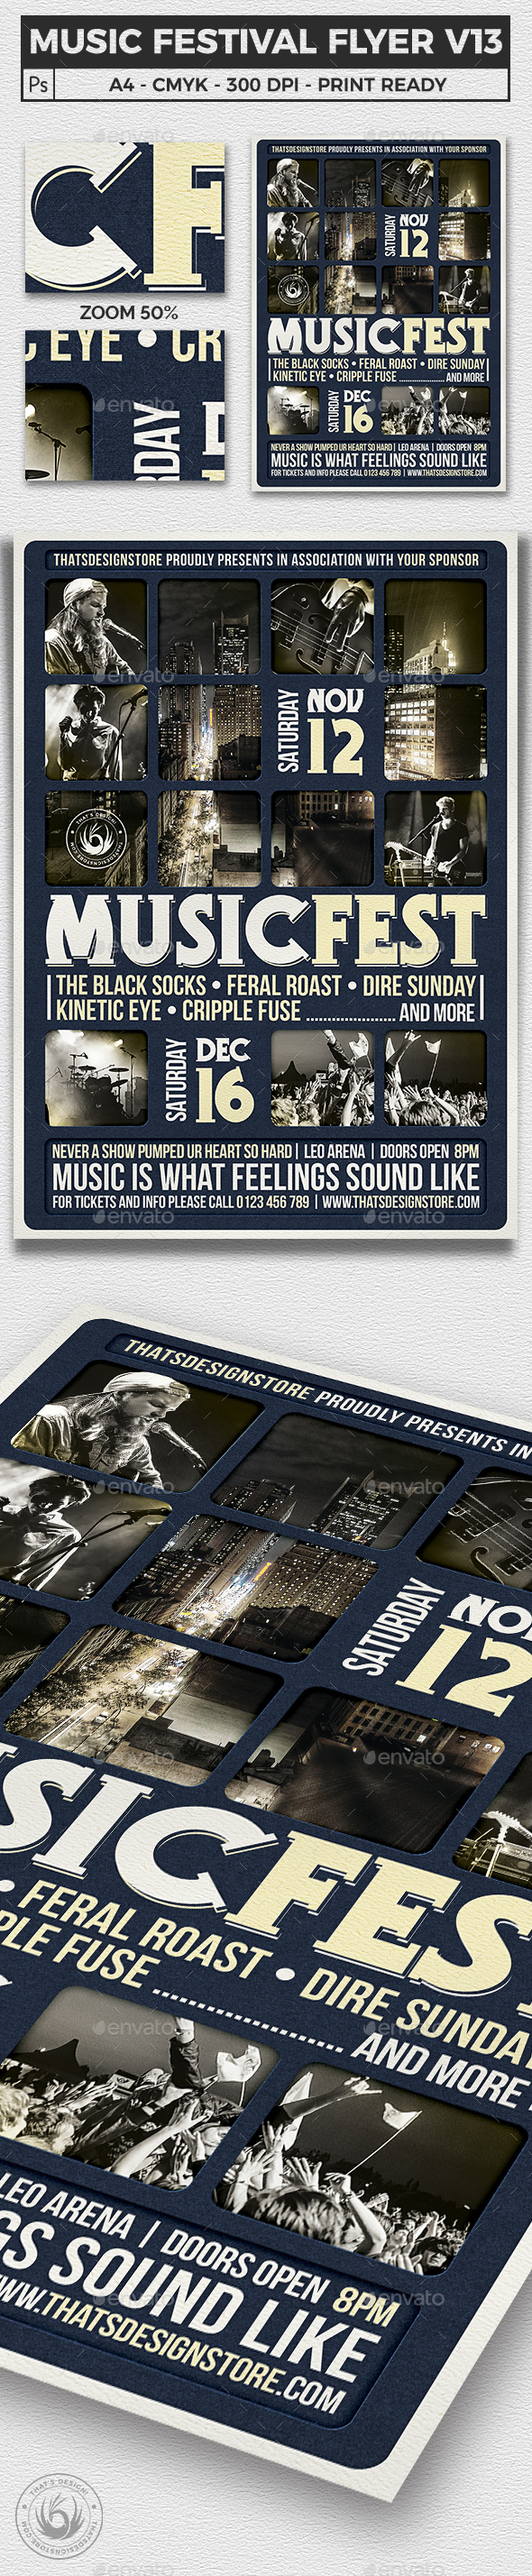 Music Festival Flyer Template V13 - Concerts Events